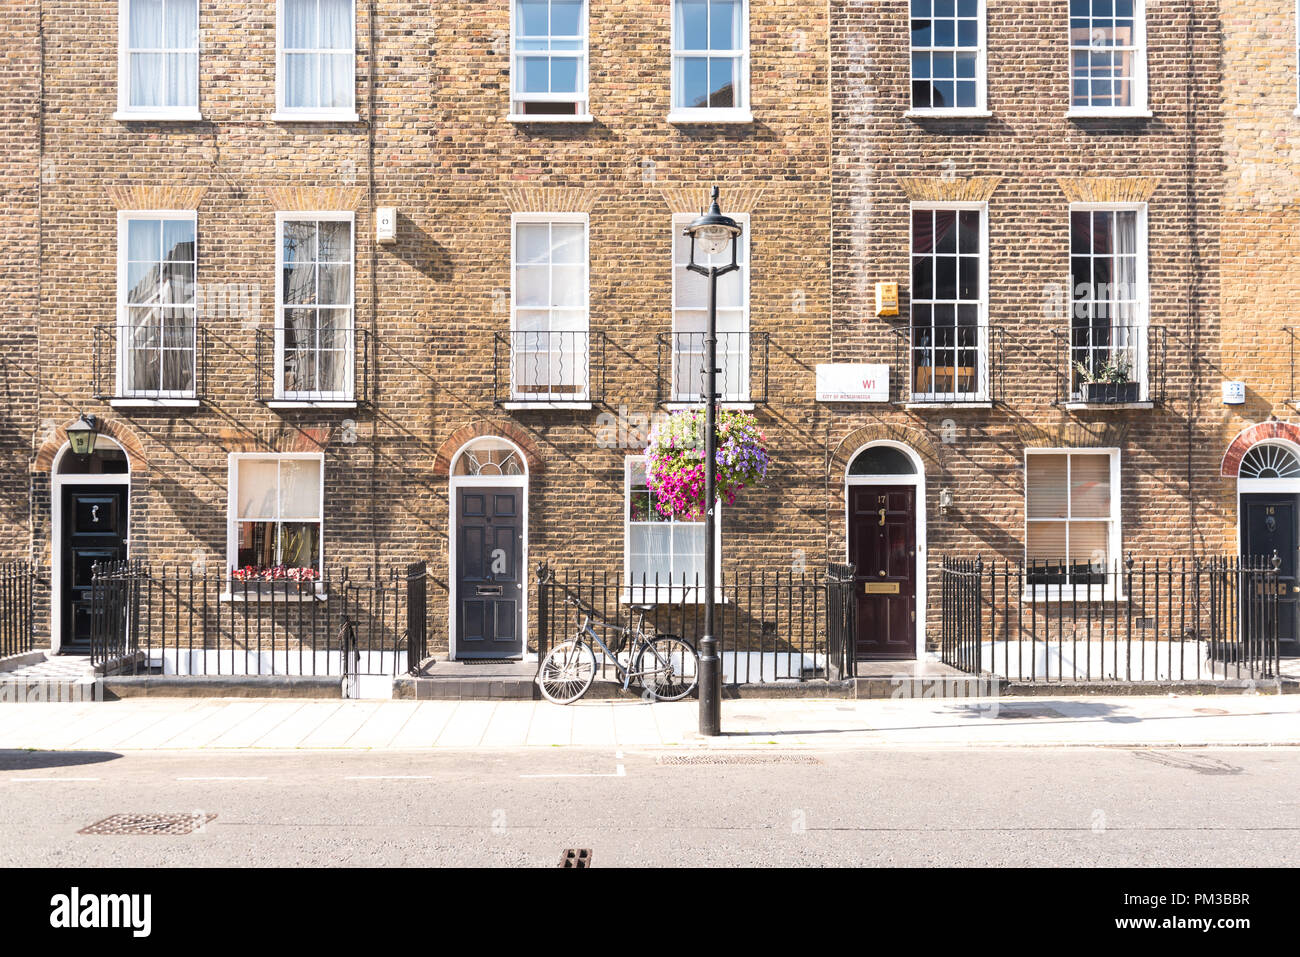 Front facades and arched doors of historic brick London Terrace houses with tall windows and iron railing out front with a bicycle on the sidewalk and - Stock Image